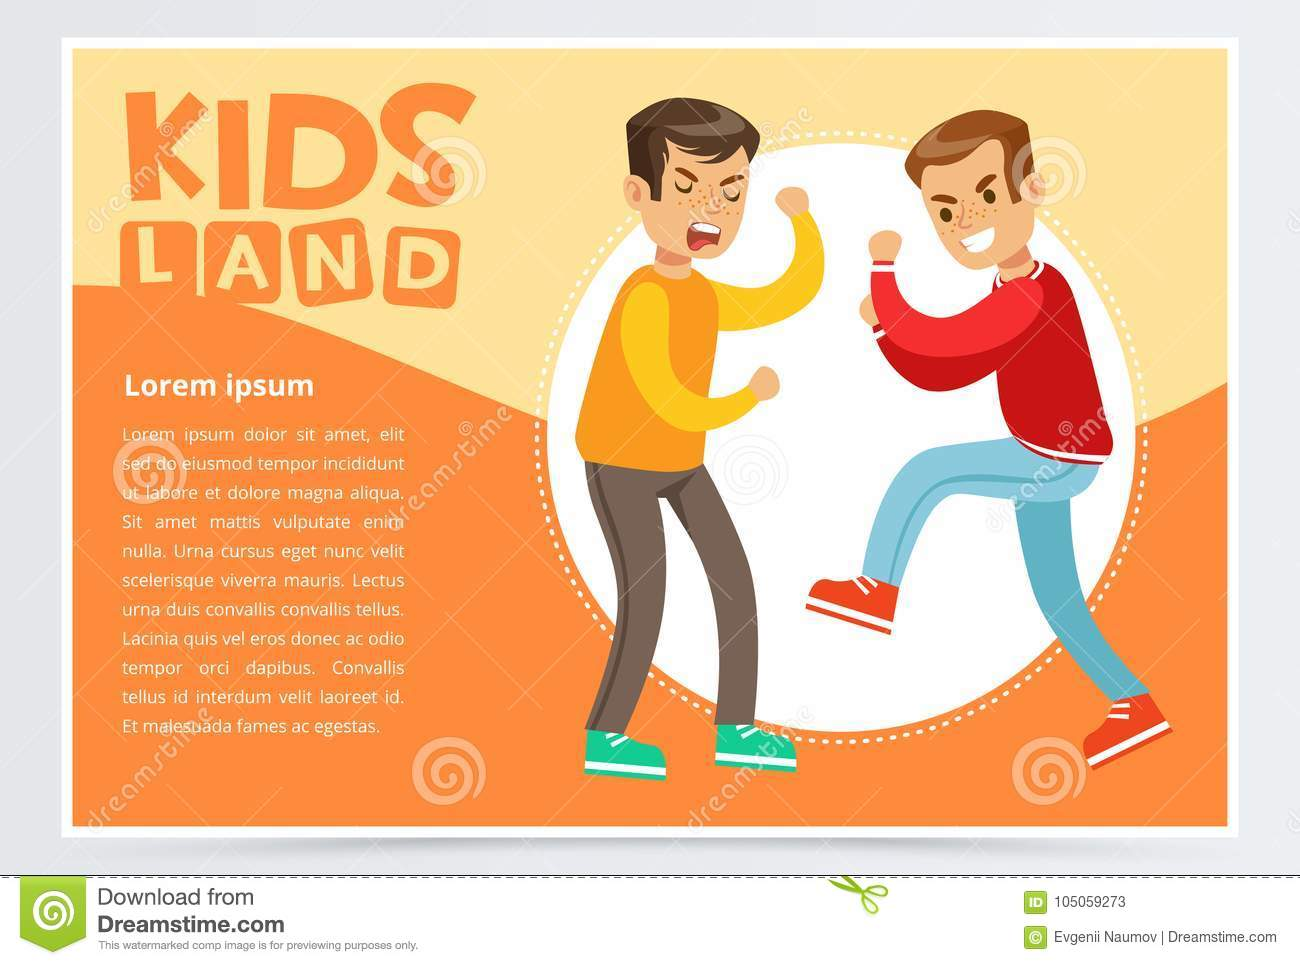 Two teen boys fighting each other, boy bullying classmate, aggressive behavior, kids land banner flat vector element for